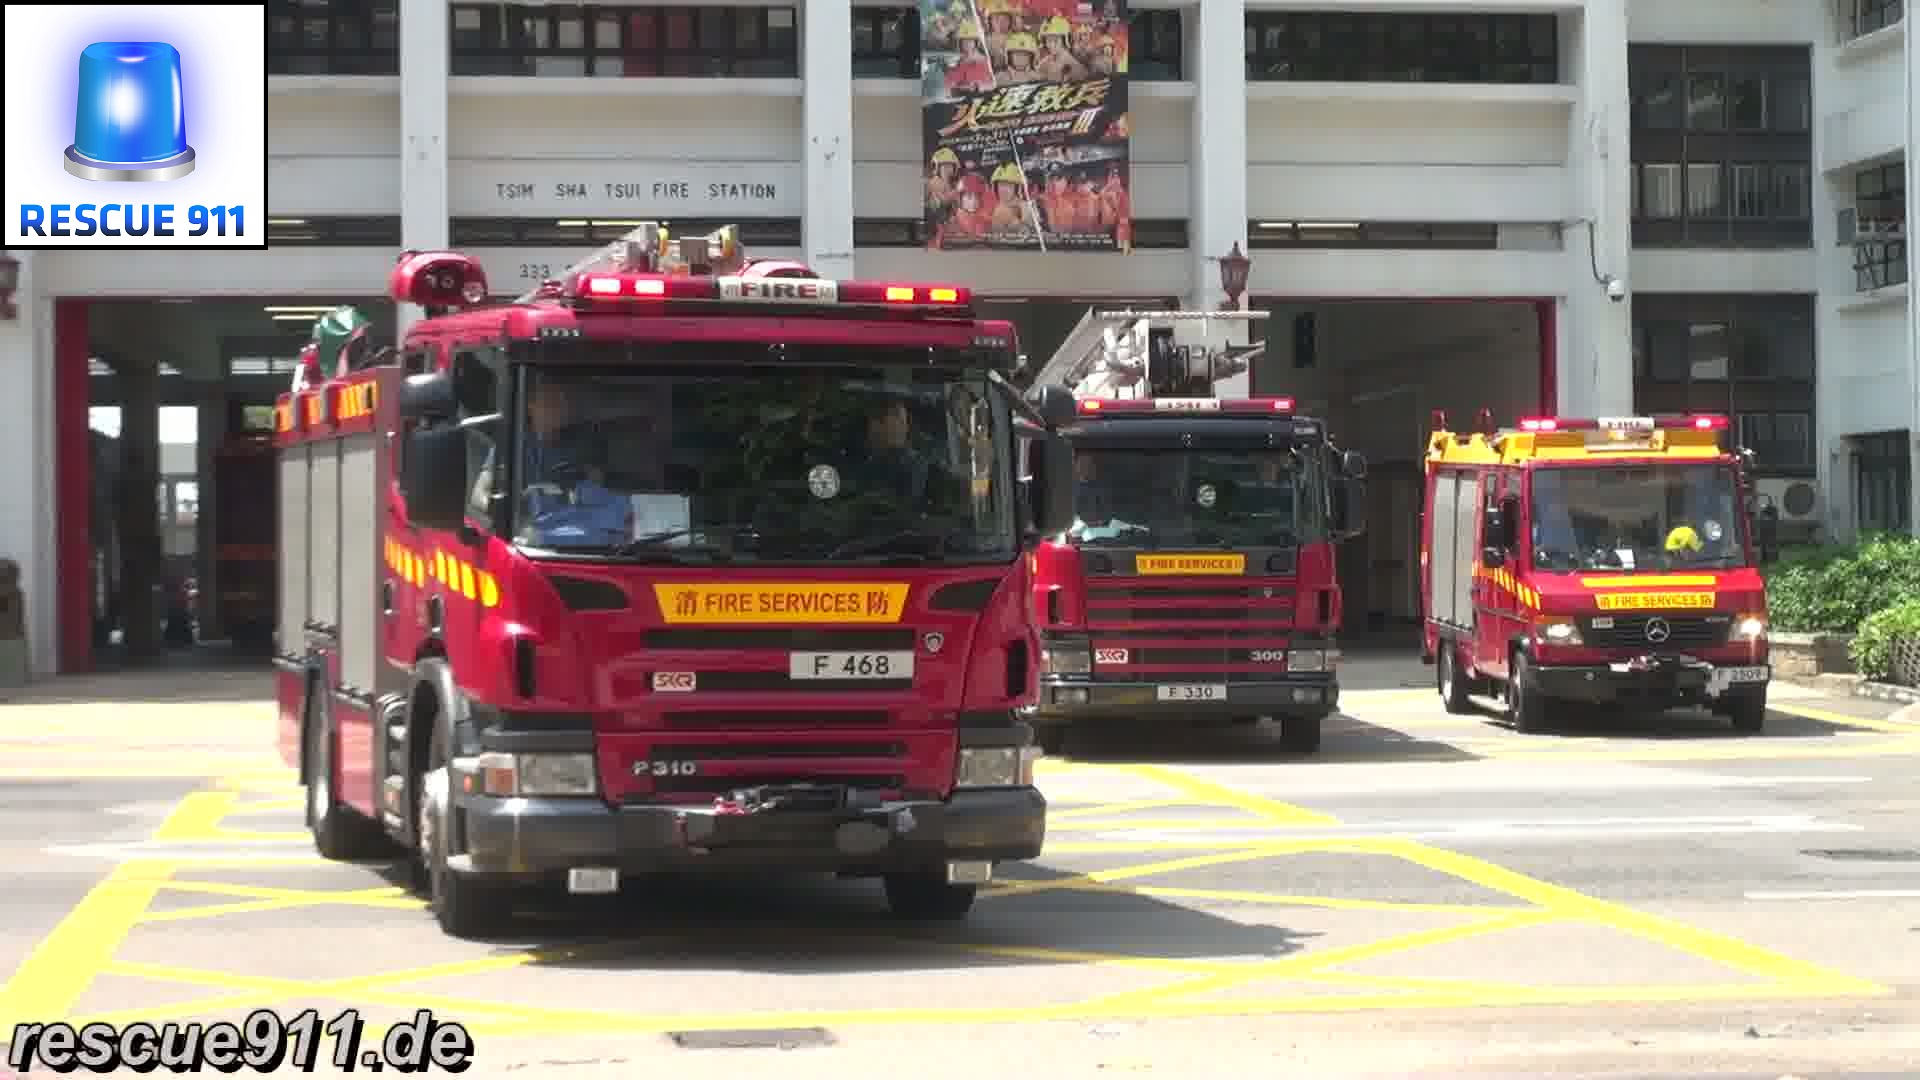 MP + HP + LRU + TL HKFSD Tsim Sha Tsui Fire Station (stream)